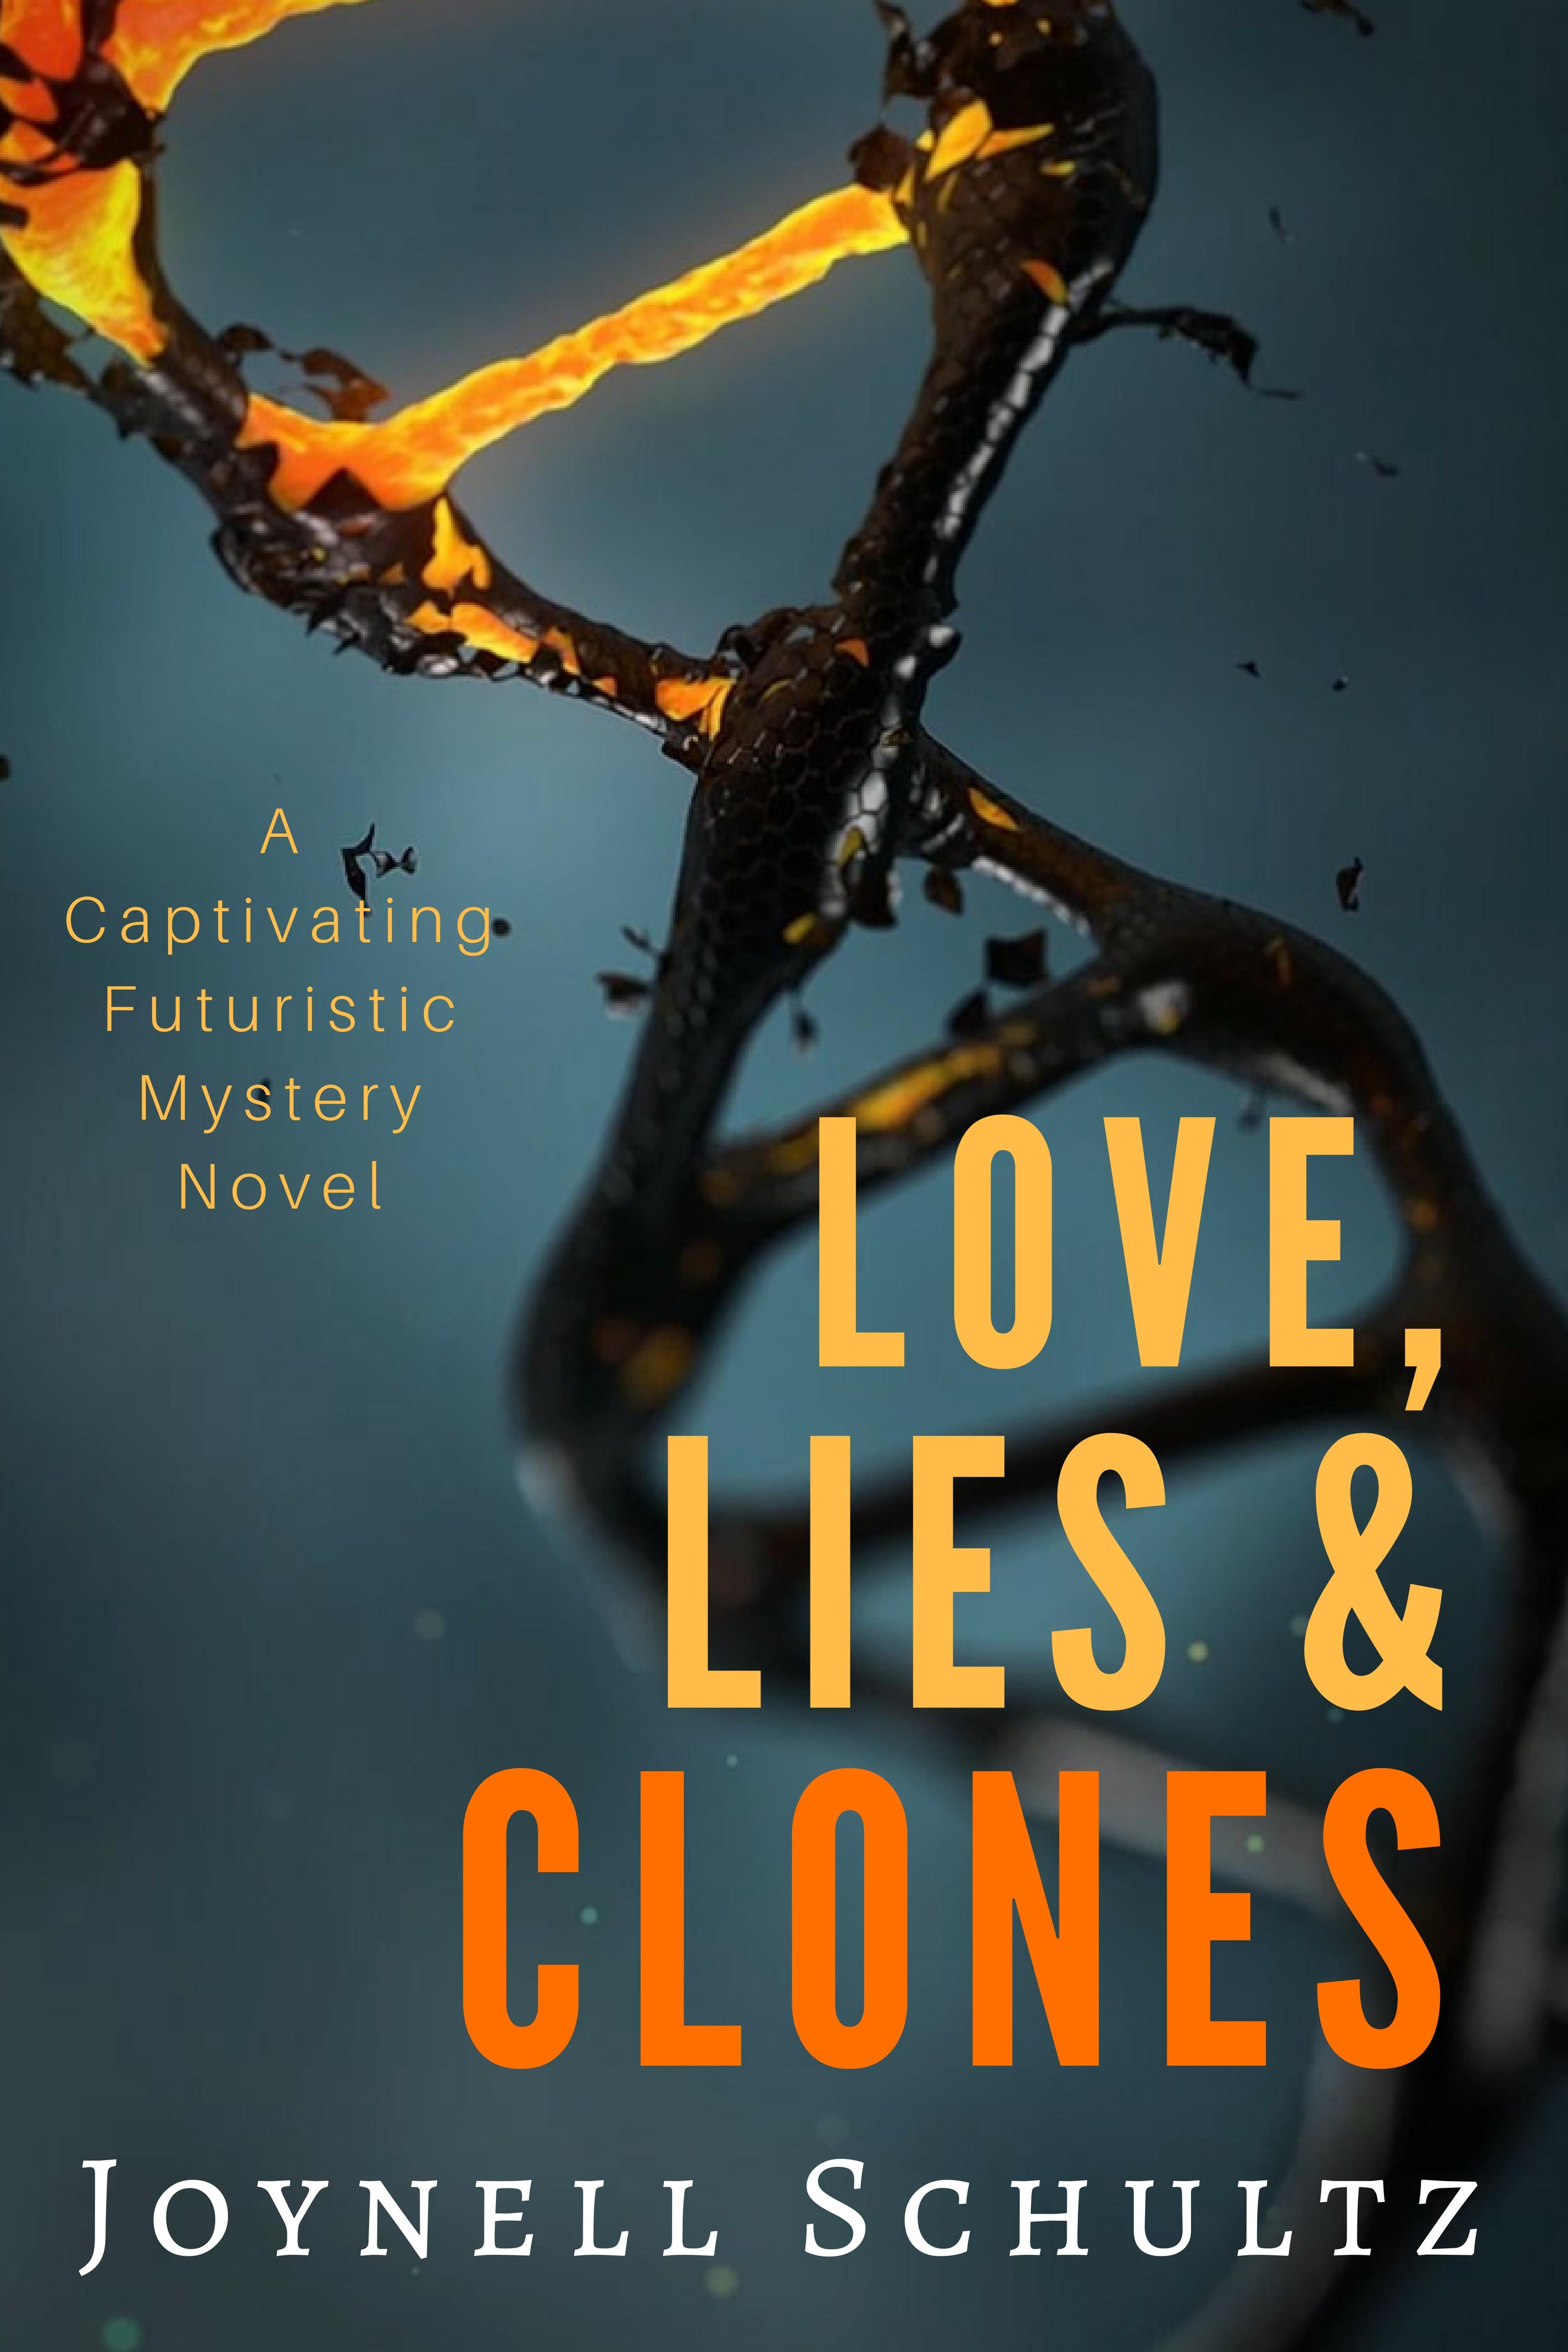 Cover for Love, Lies & Clones by Joynell Shultz